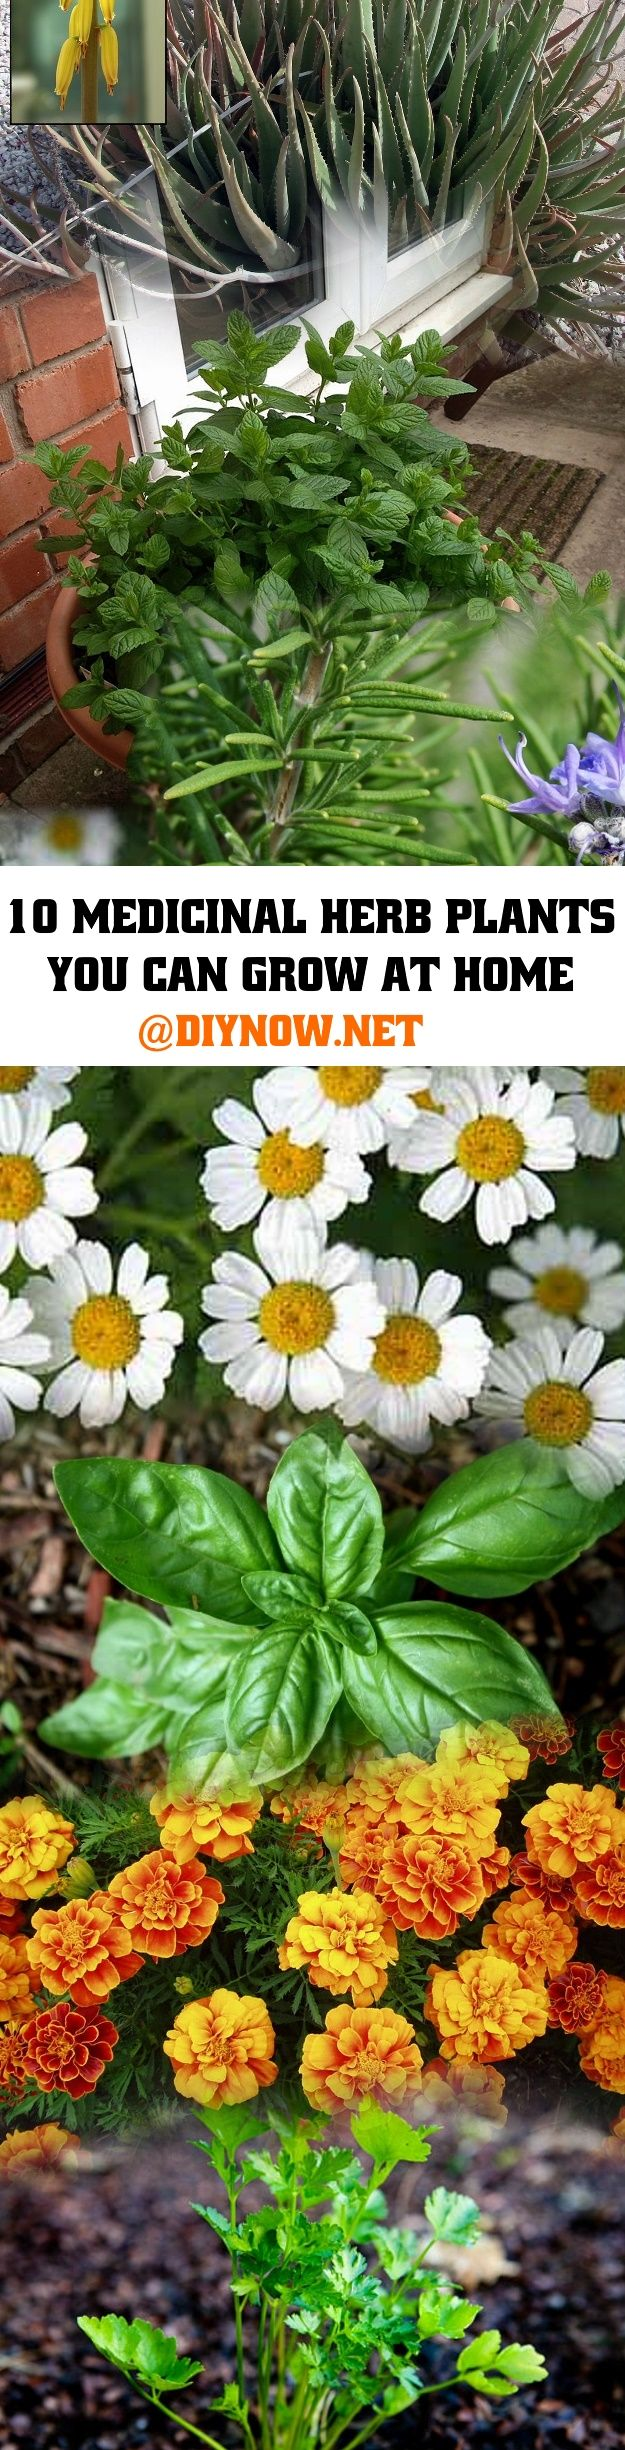 10 Medicinal Herb Plants You Can Grow At Home